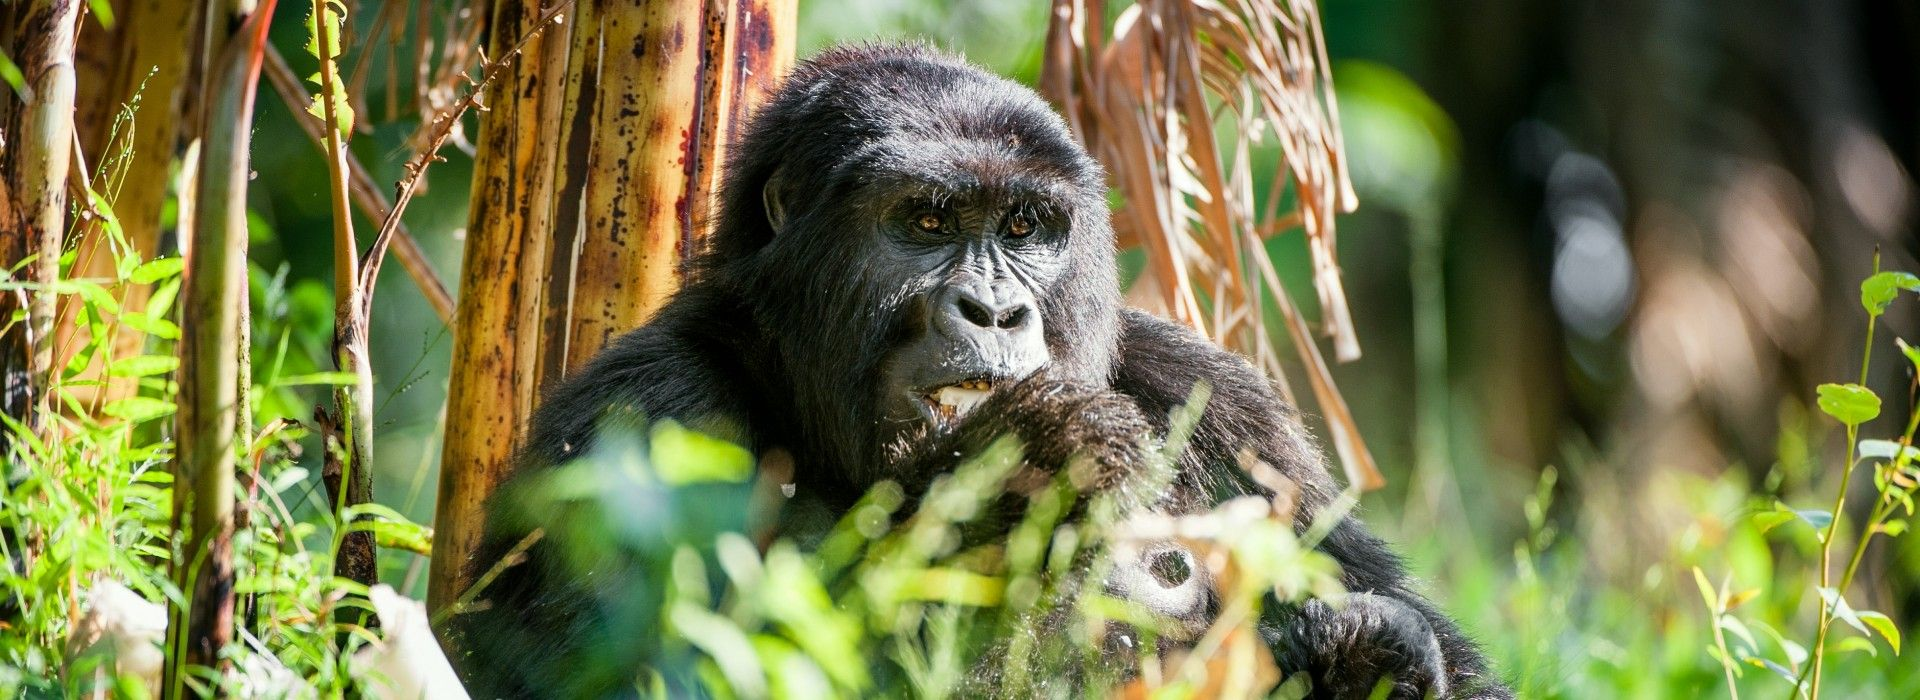 Special interests and hobbies Tours in Uganda